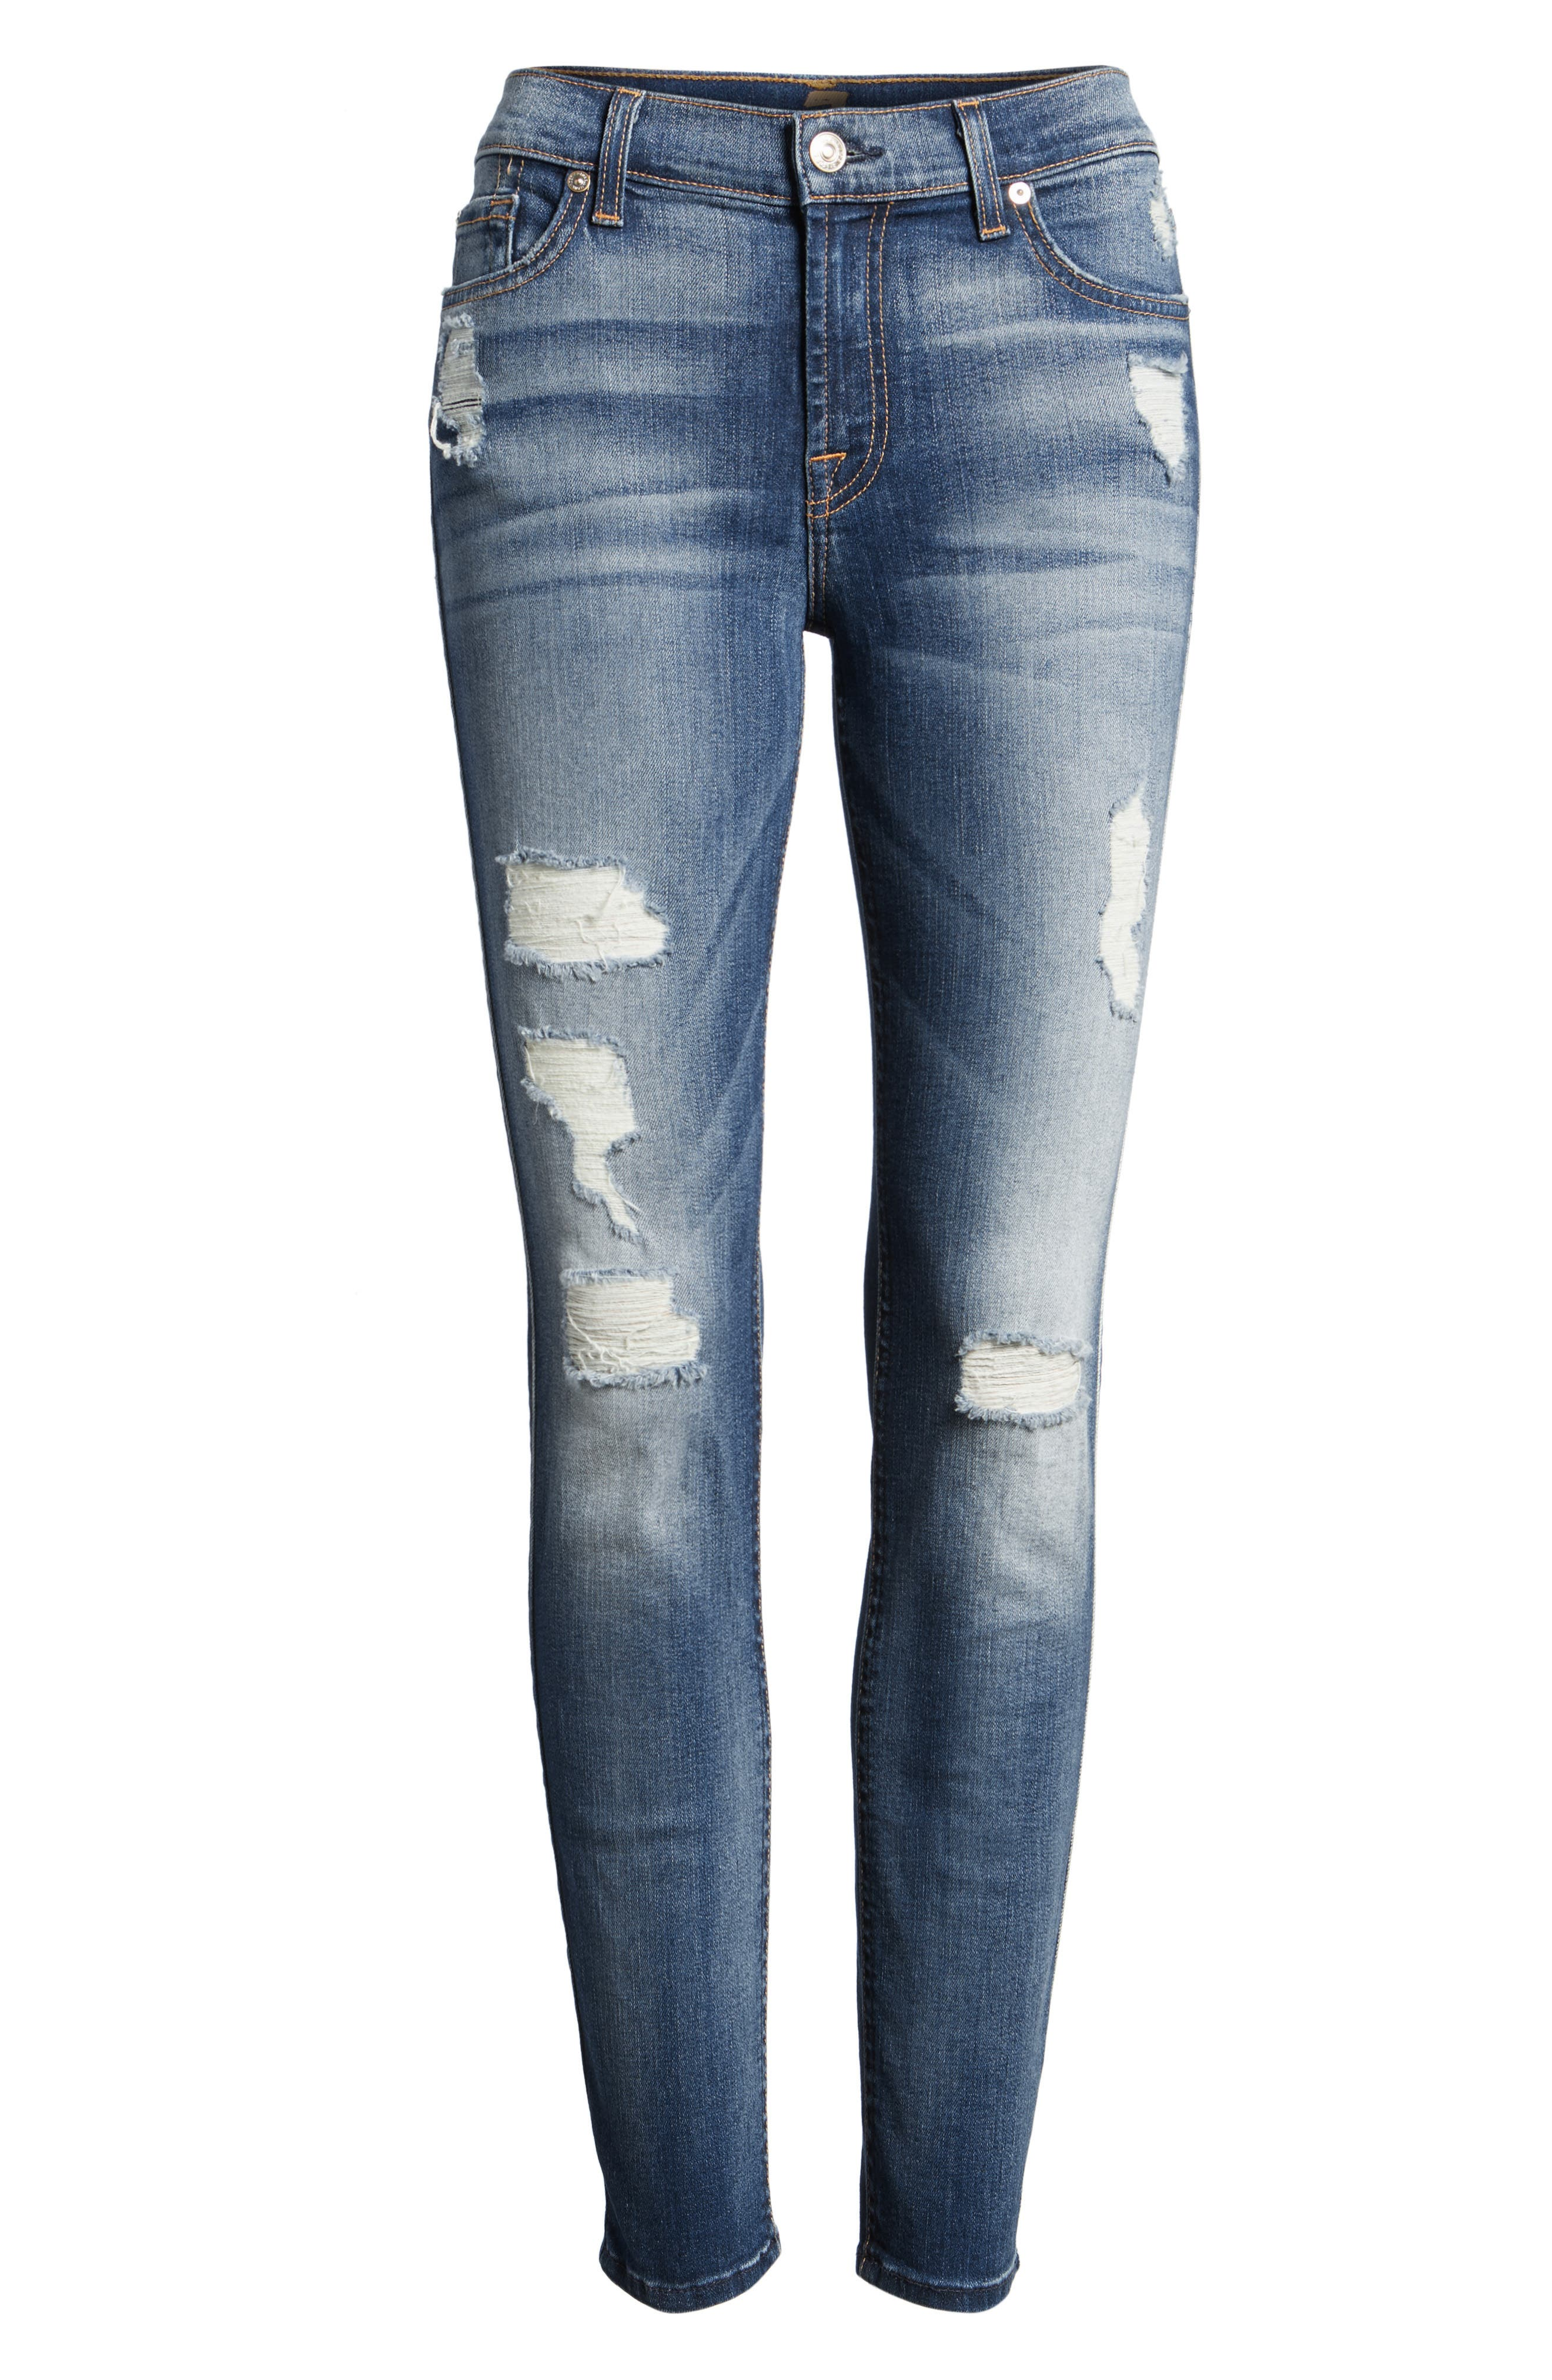 Ankle Skinny Jeans,                             Alternate thumbnail 4, color,                             Distressed Authentic Light